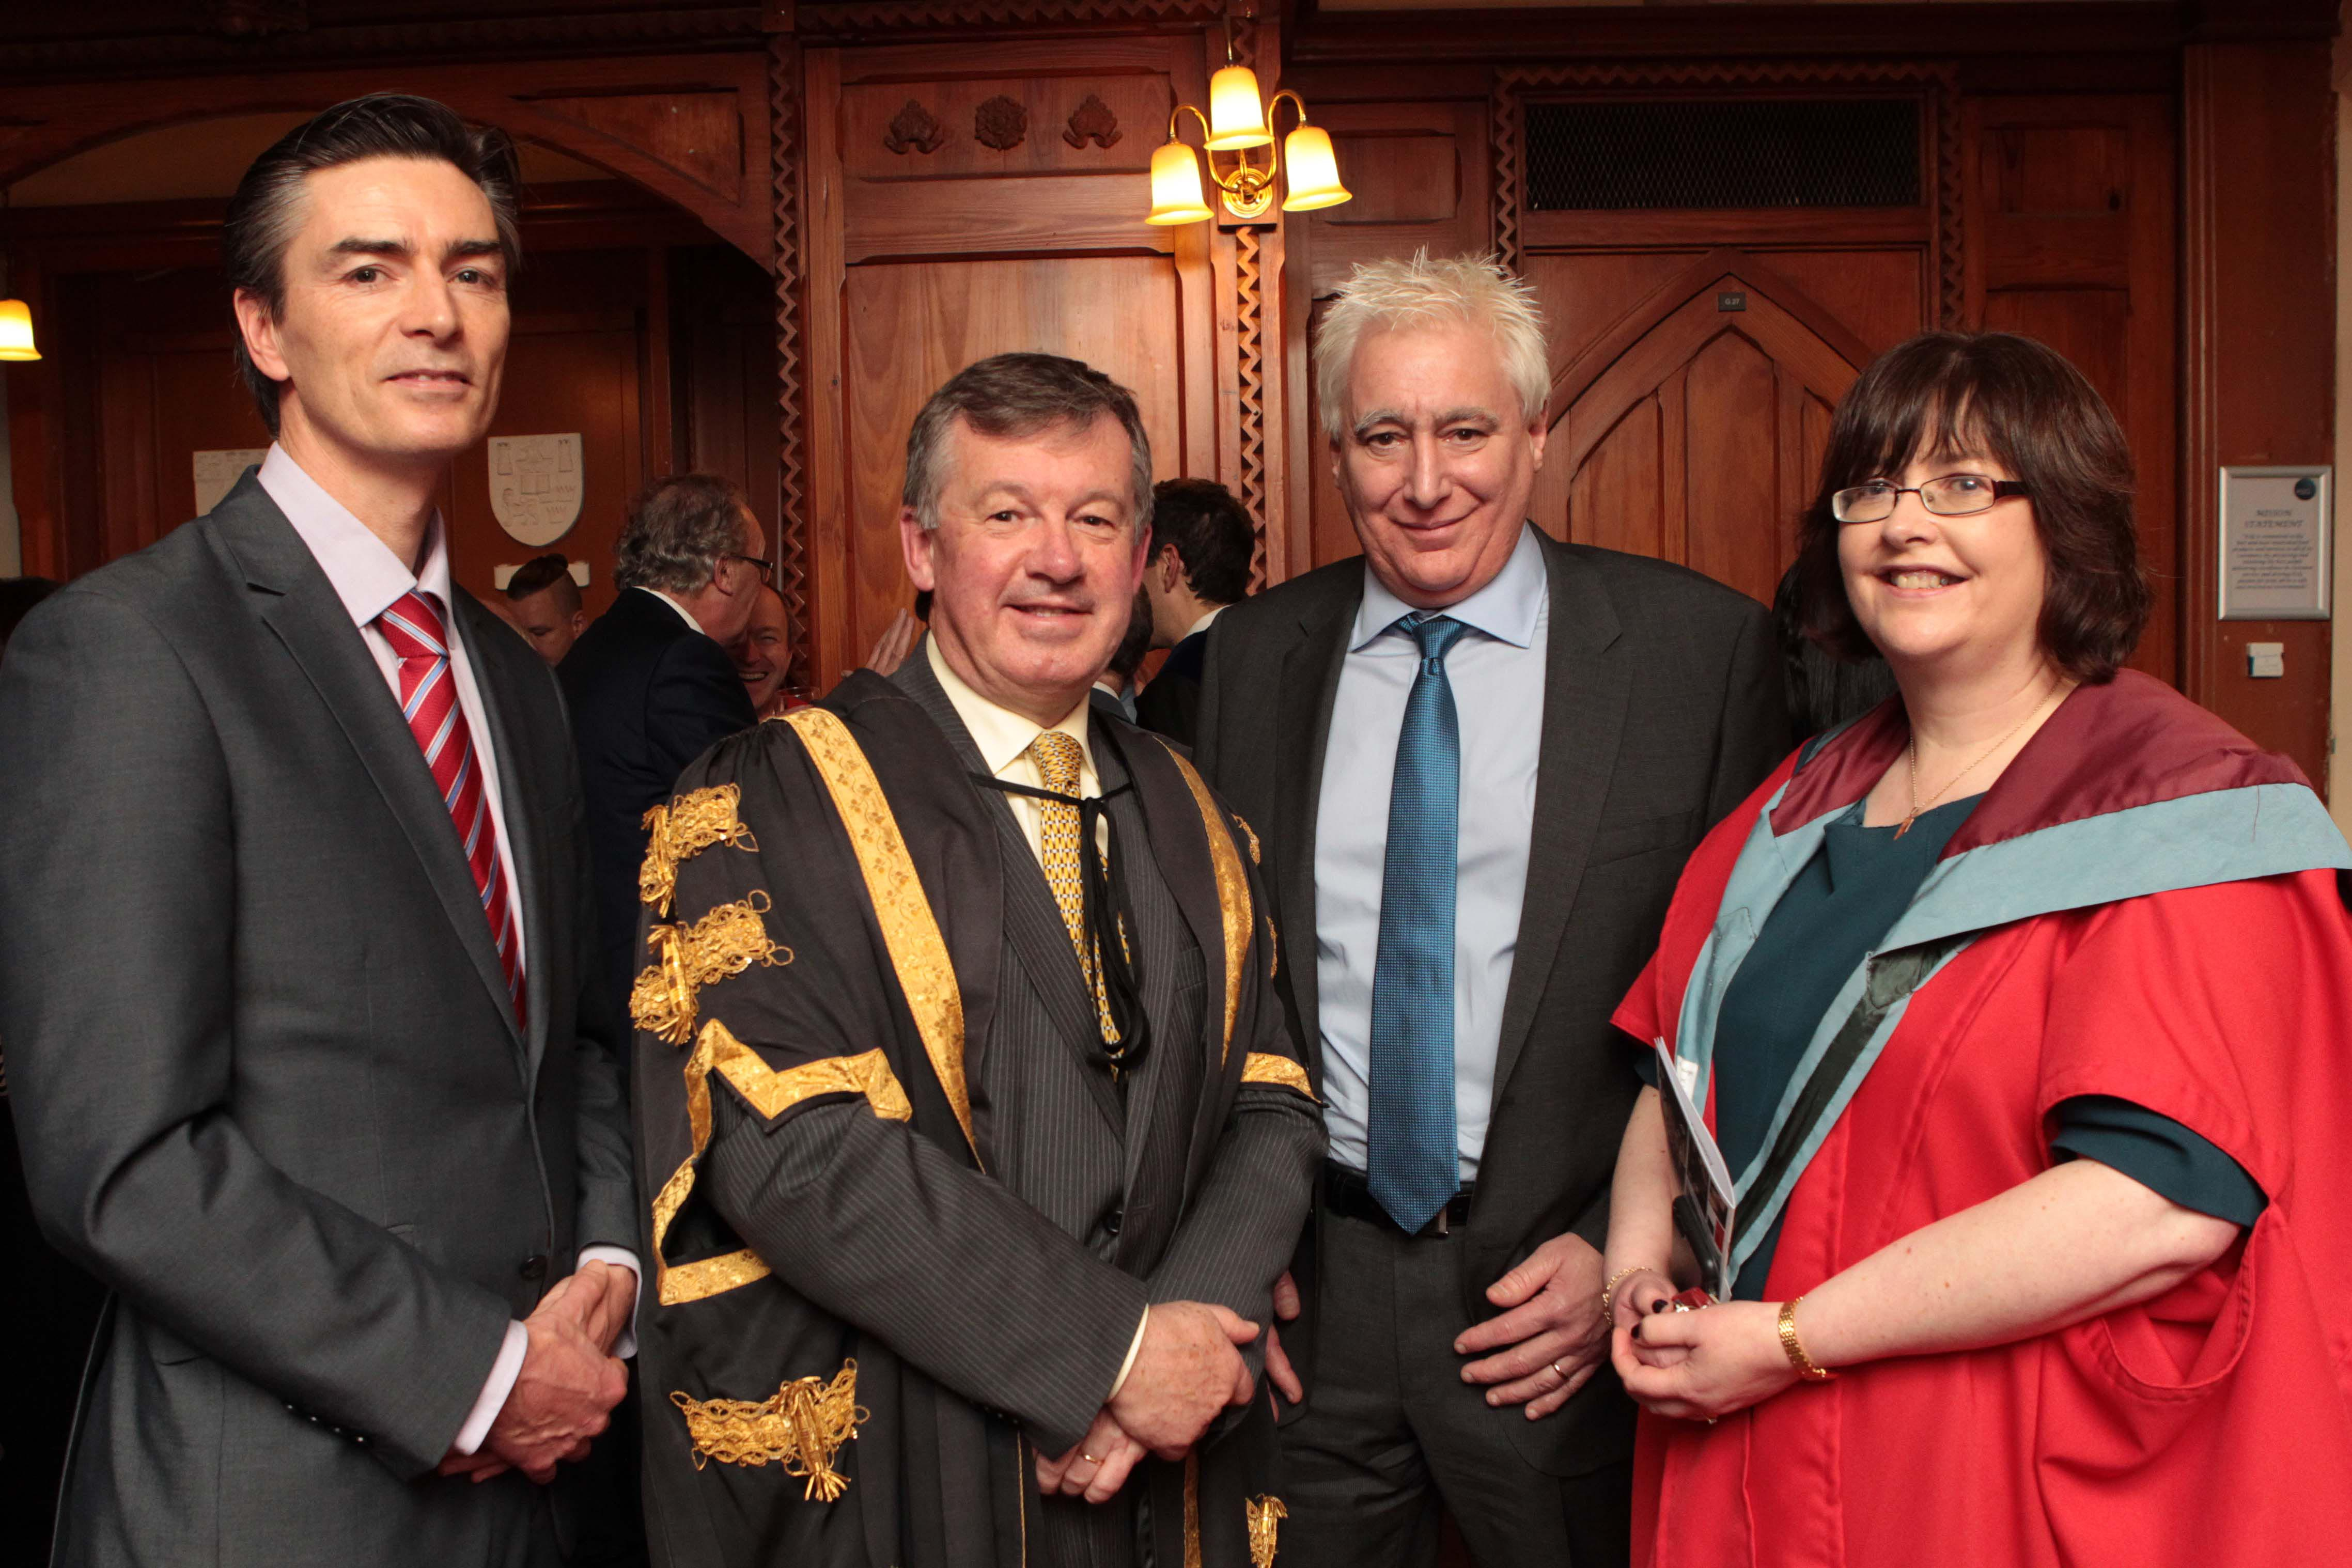 Donal Sullivan of Tyco; Dr. Michael Murphy, President of UCC, Joe Buccino of Tyco, and Anita Maguire, VP of Research at UCC, pictured at the post-ceremony reception of the honorary conferrings at UCC on George Boole Day. Pic: Diane Cusack